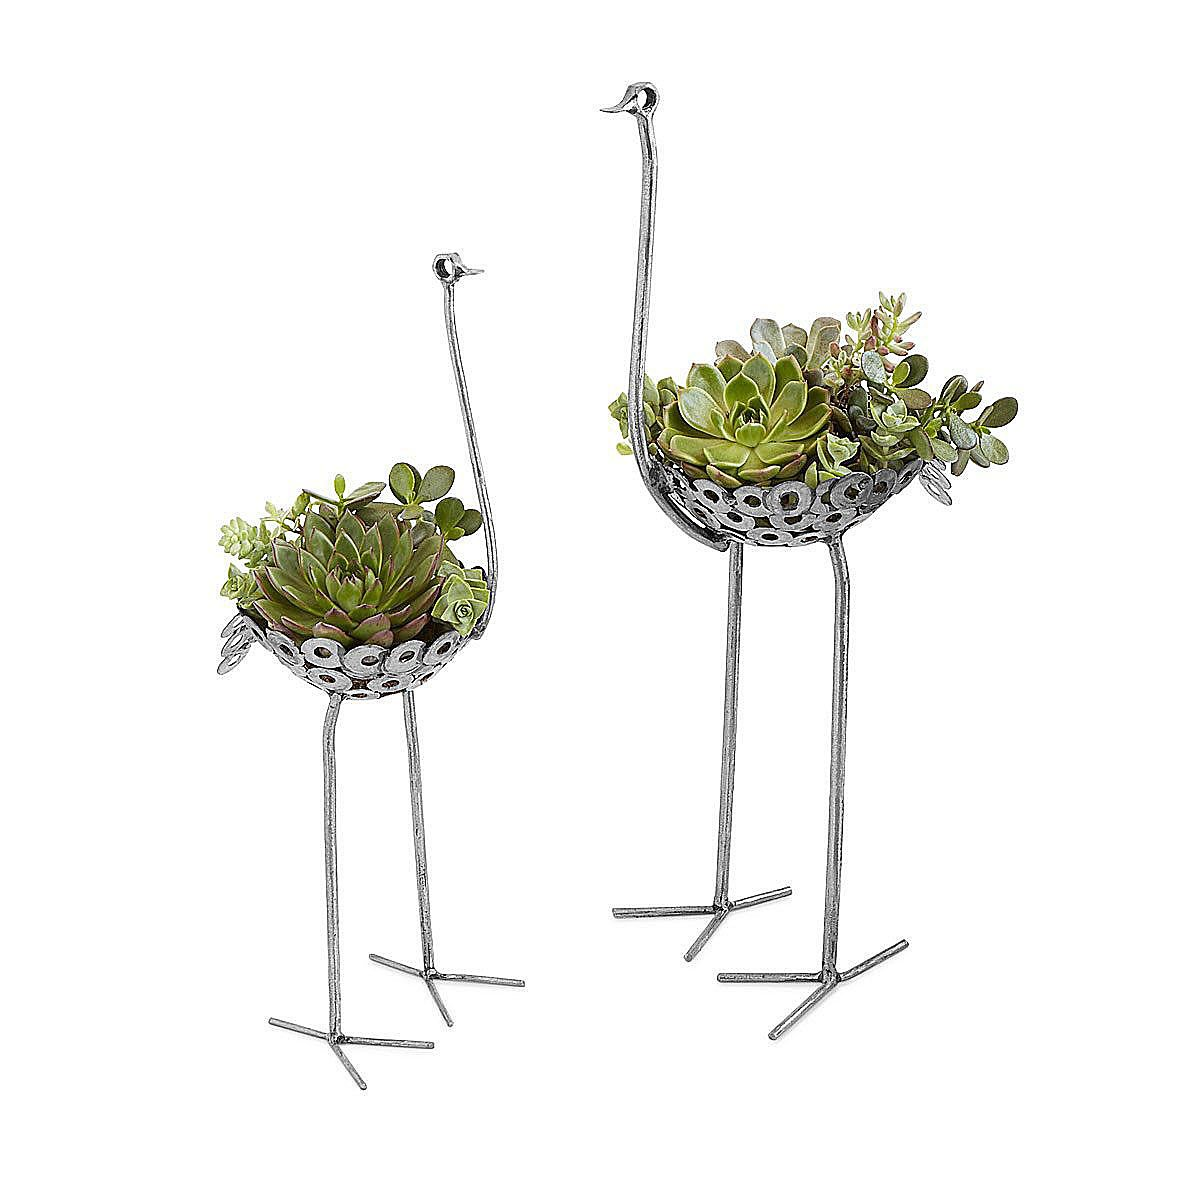 garden decor | uncommongoods